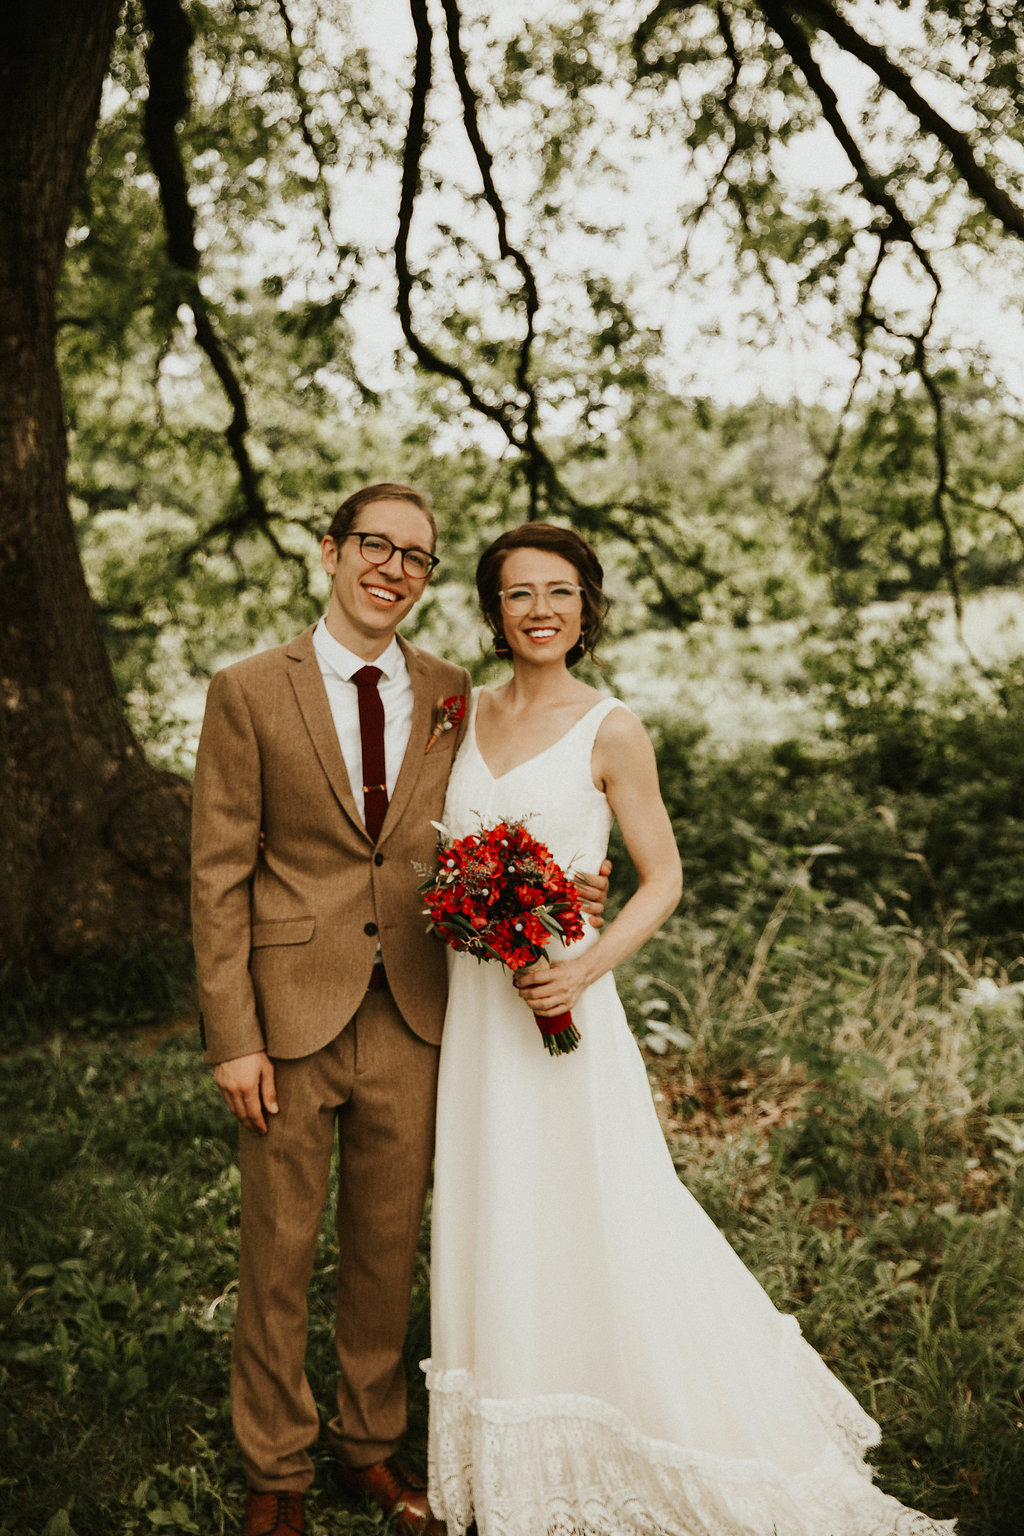 Mike + Cat :: Grace Byron Photography :: Sixpence Events, Silverwood wedding